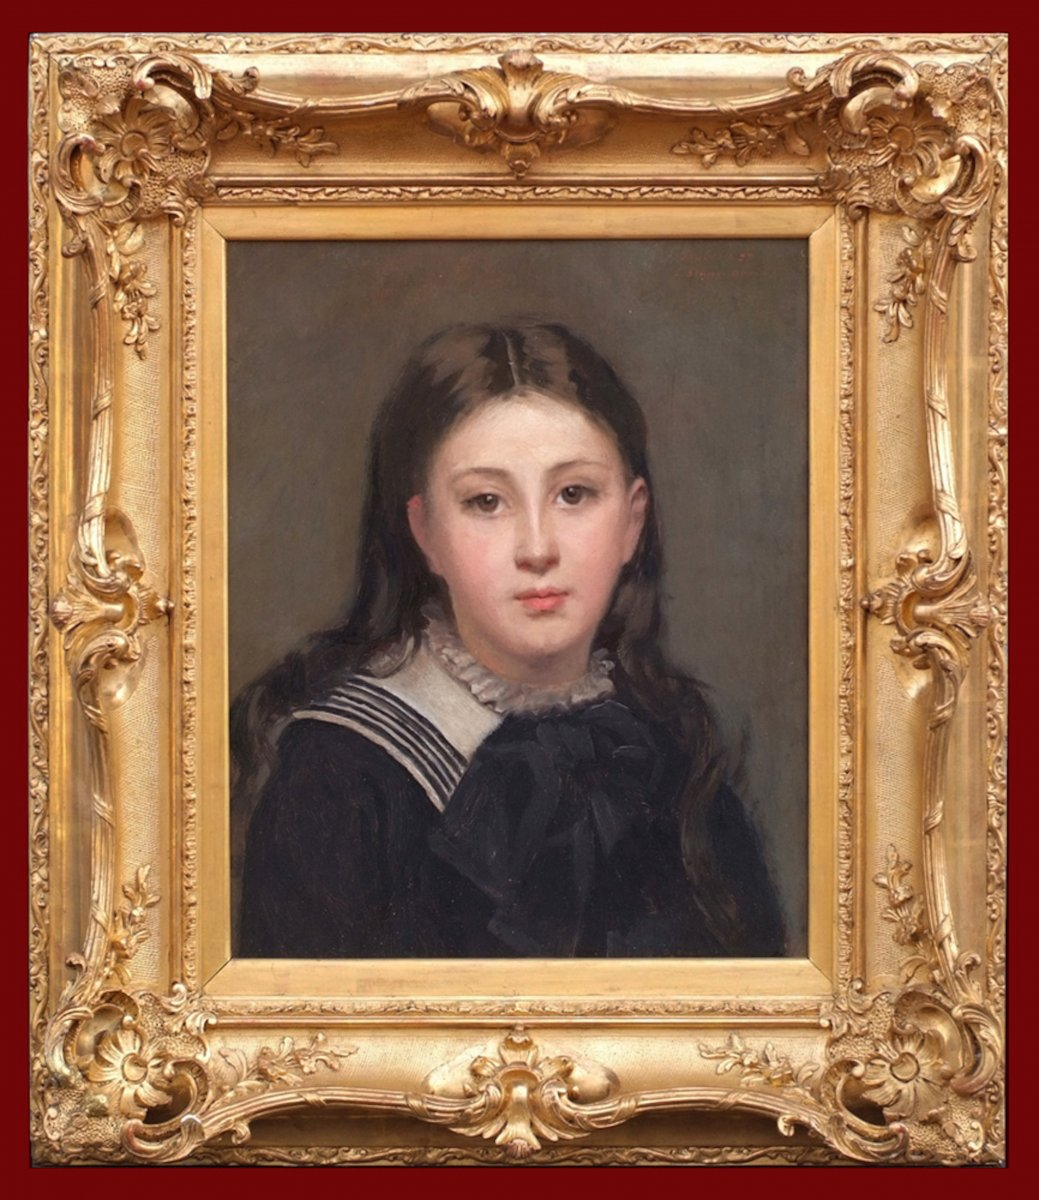 Blanc-garin Ernest Painting 19th Century Portrait Of Young Lady Circa 1880